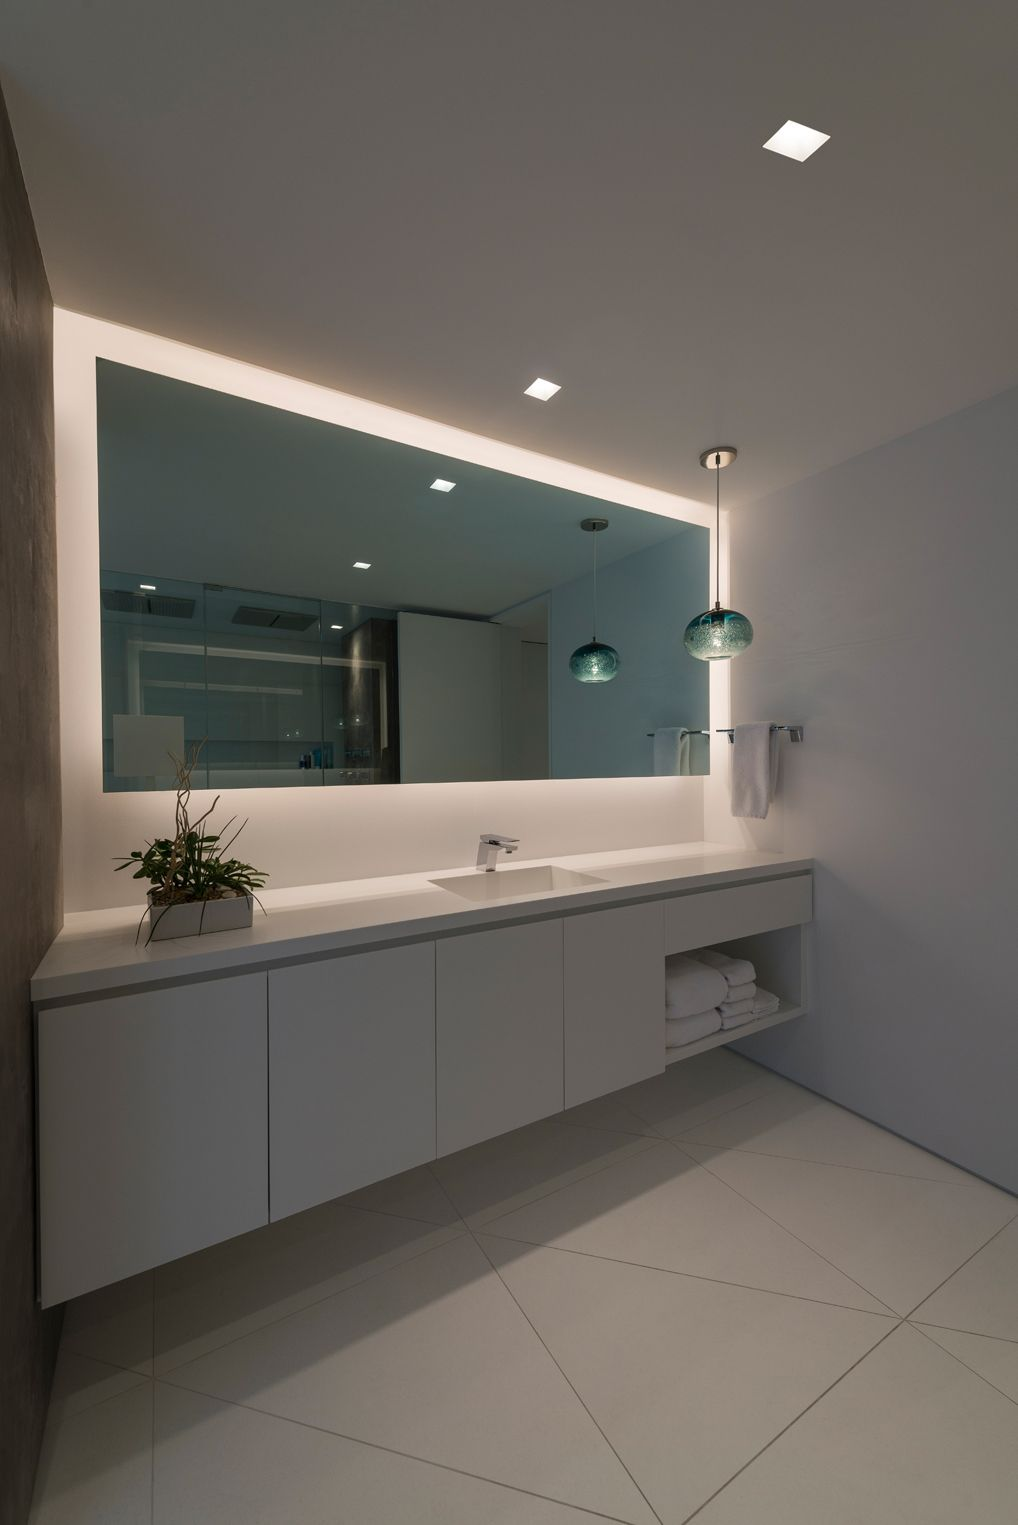 Big Vanity Mirror With Lights Classy Tips To Choose A Bathroom Mirror  Pinterest  Modern Architecture Inspiration Design